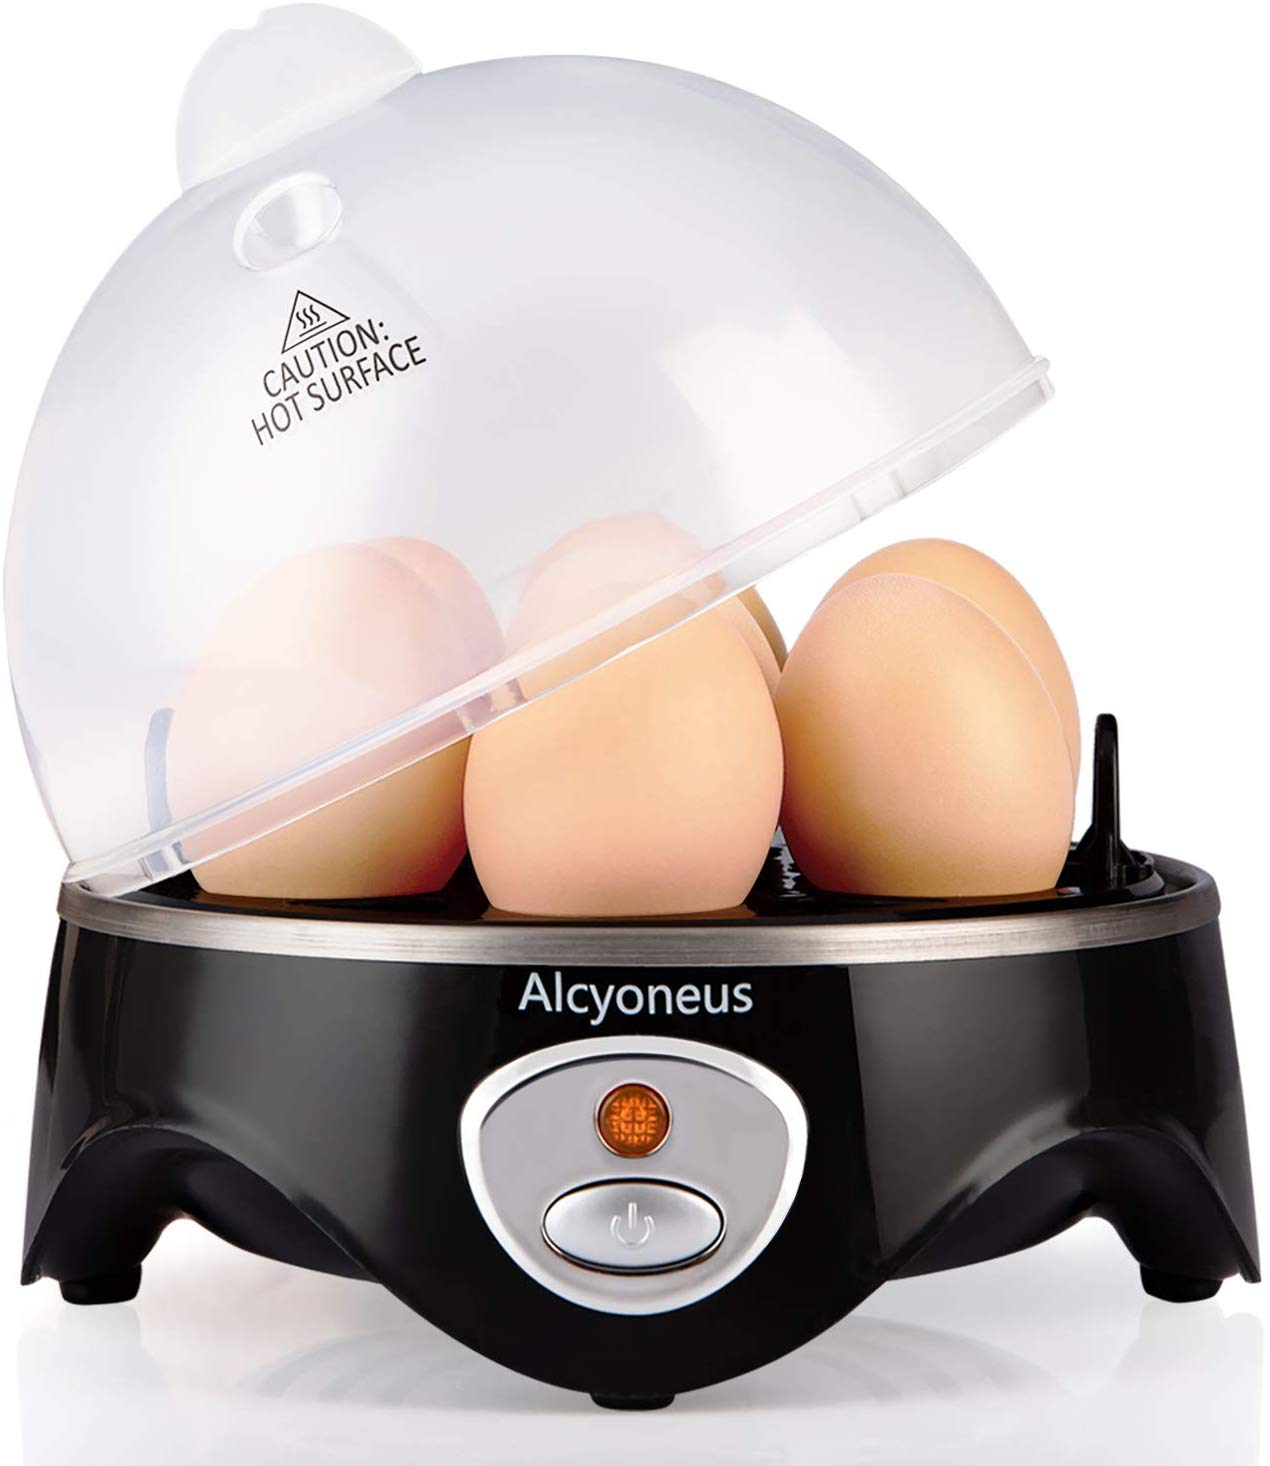 Alcyoneus Rapid Egg Cooker, Electric Egg Boiler, Noise-Free Hard Boiled Egg Cooker with Auto Shut Off & 7-Capacity, Suitable for Poached Egg, Scrambled Eggs, Omelets